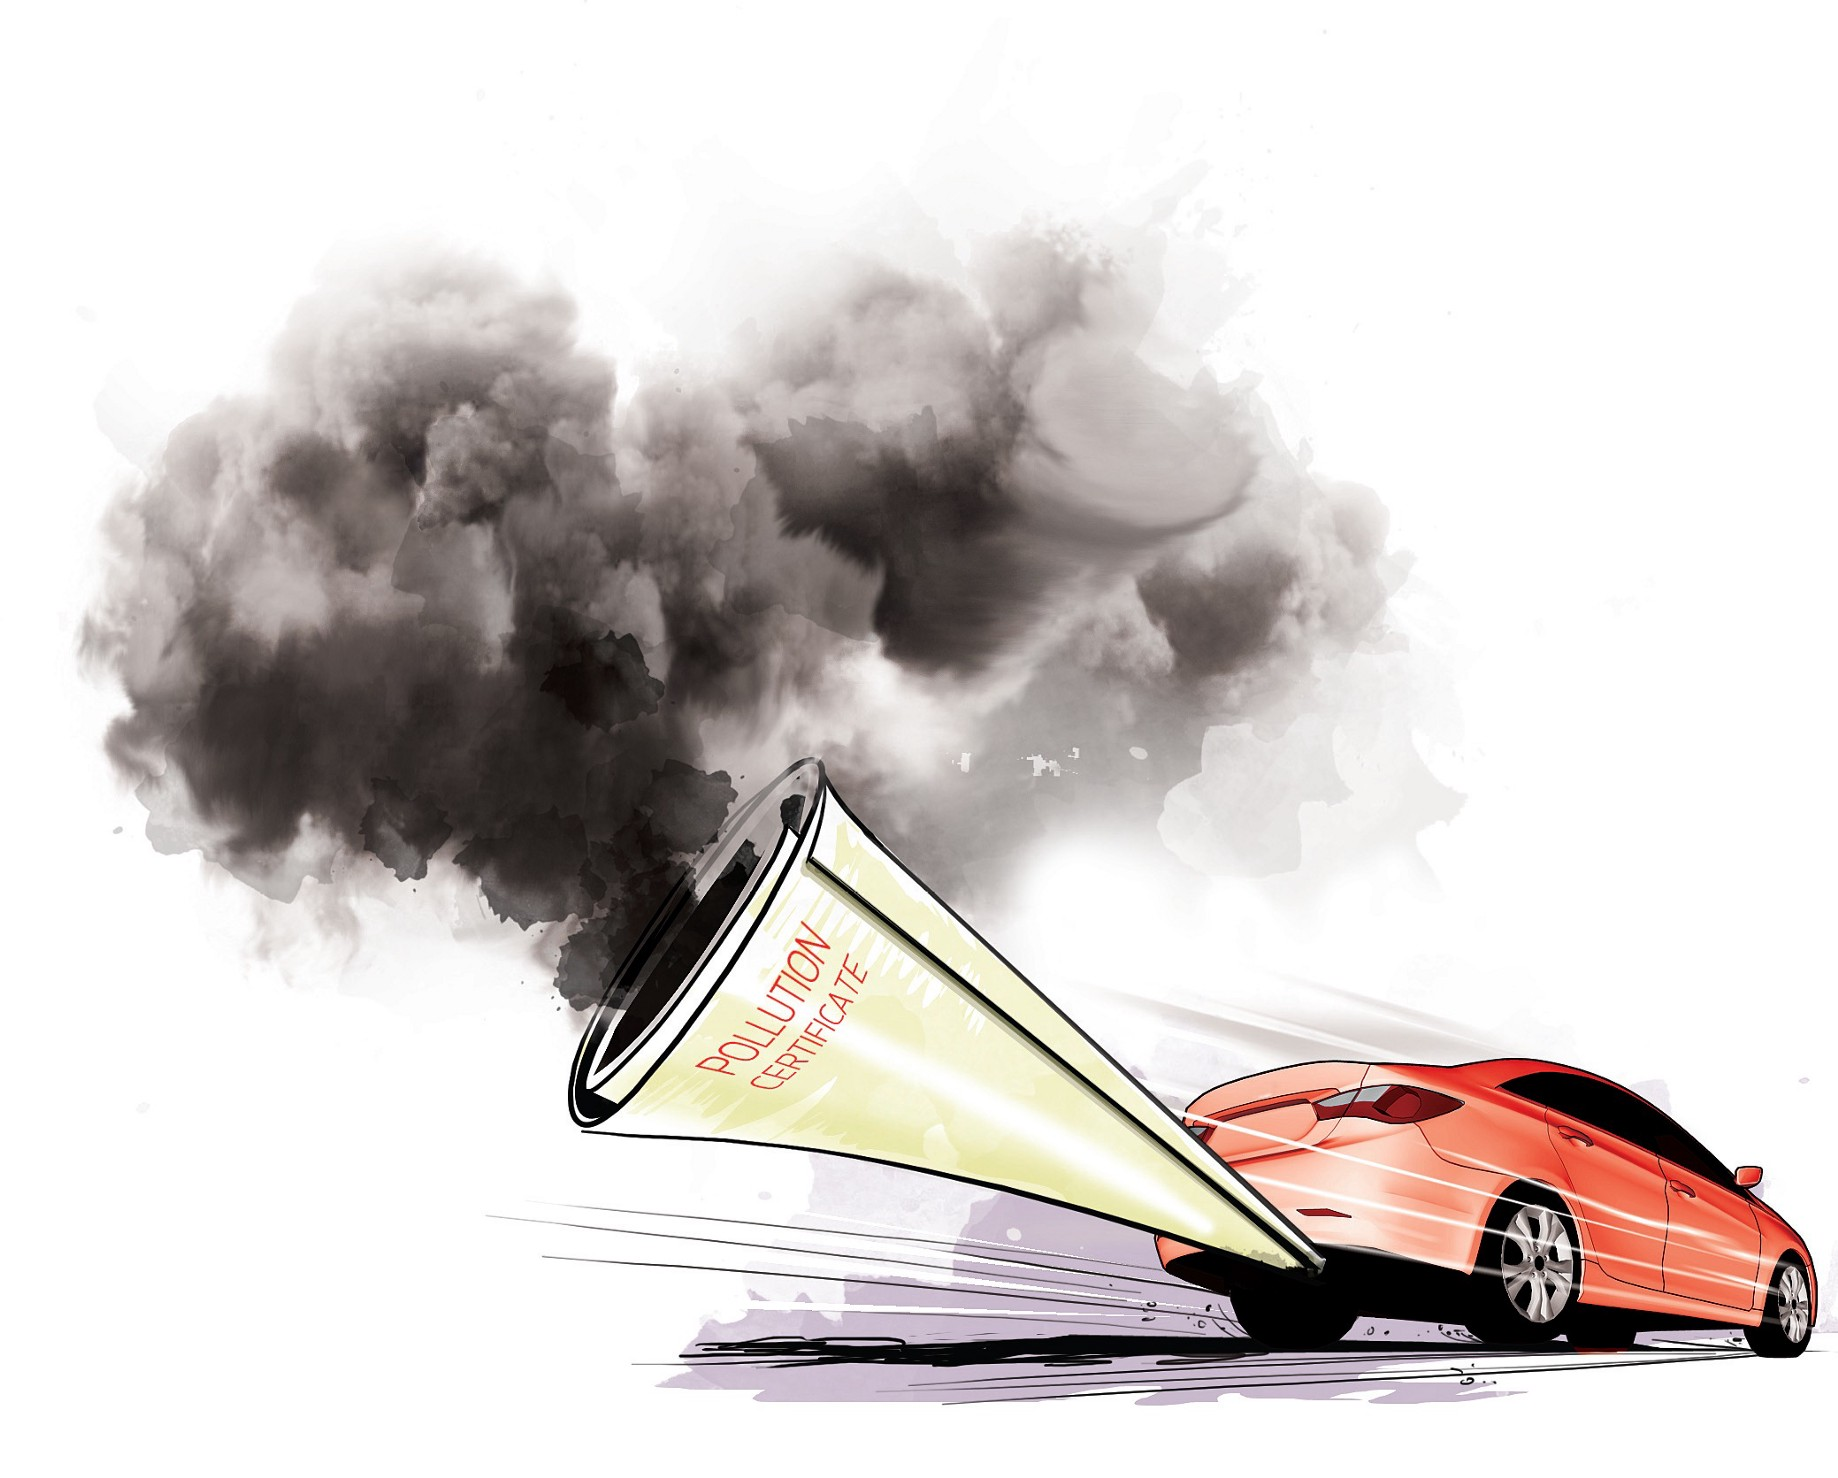 Tackling Air Pollution: real-time vehicle pollution data to